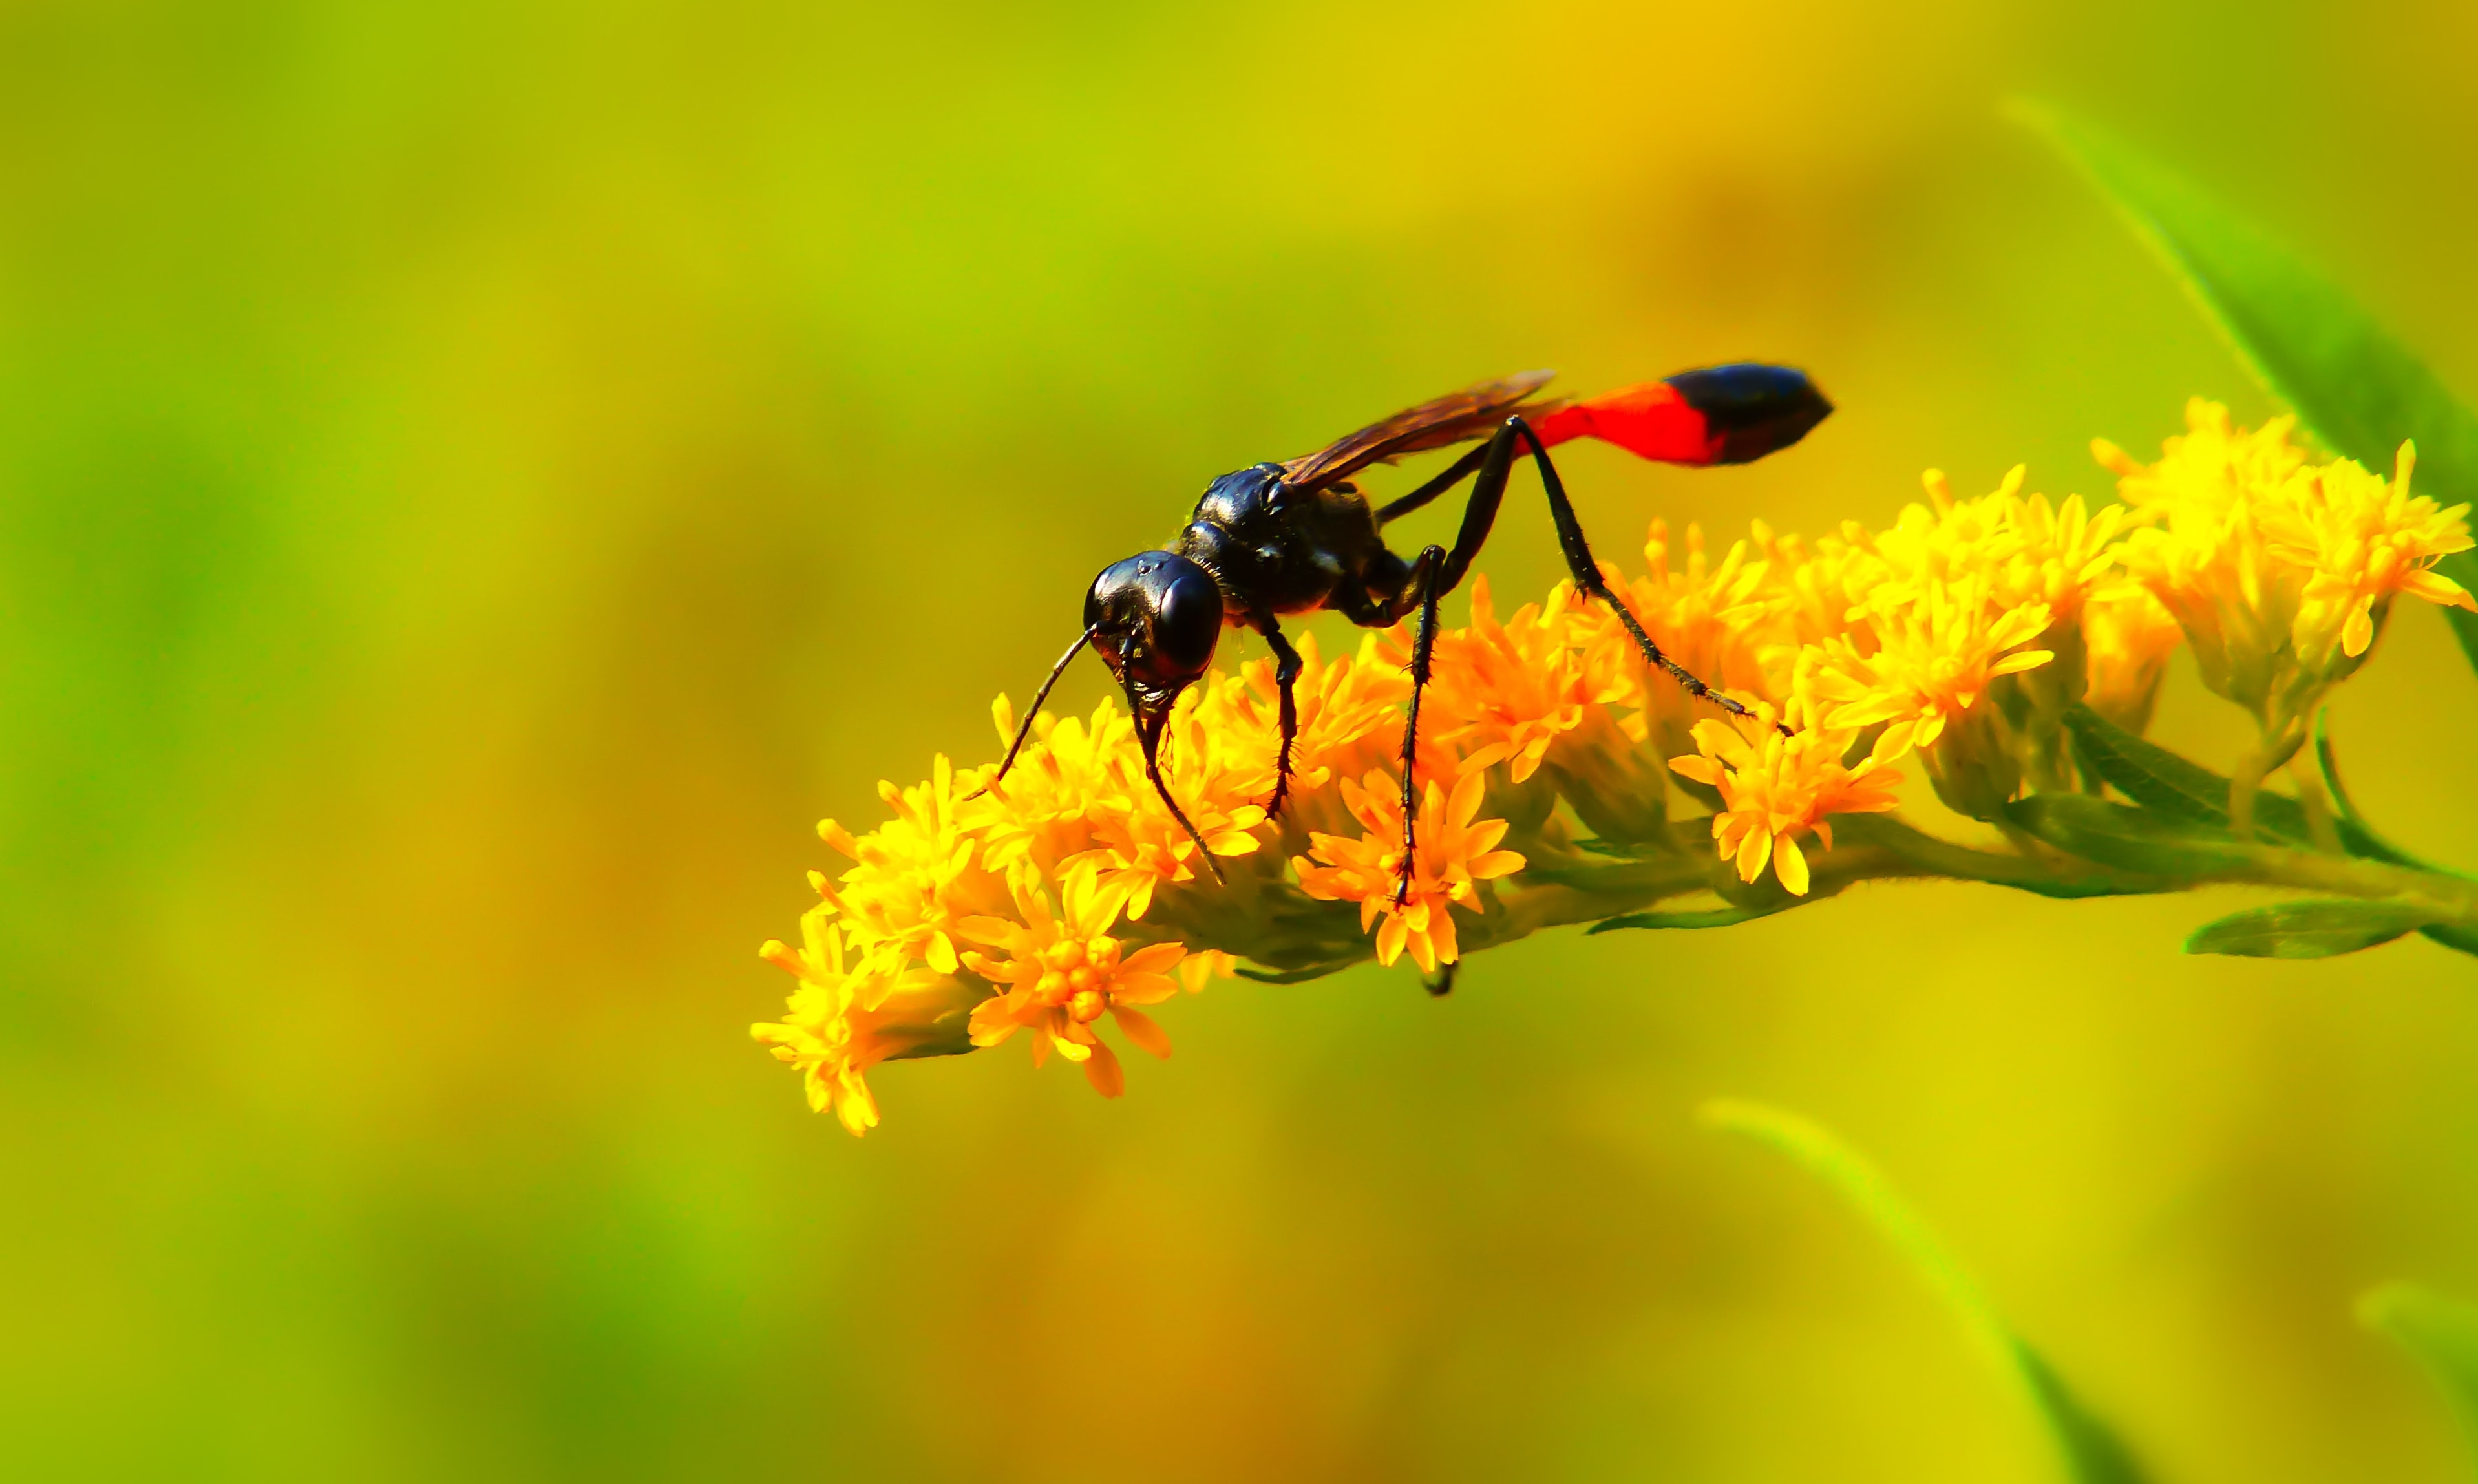 black and red fly perched on yellow flower